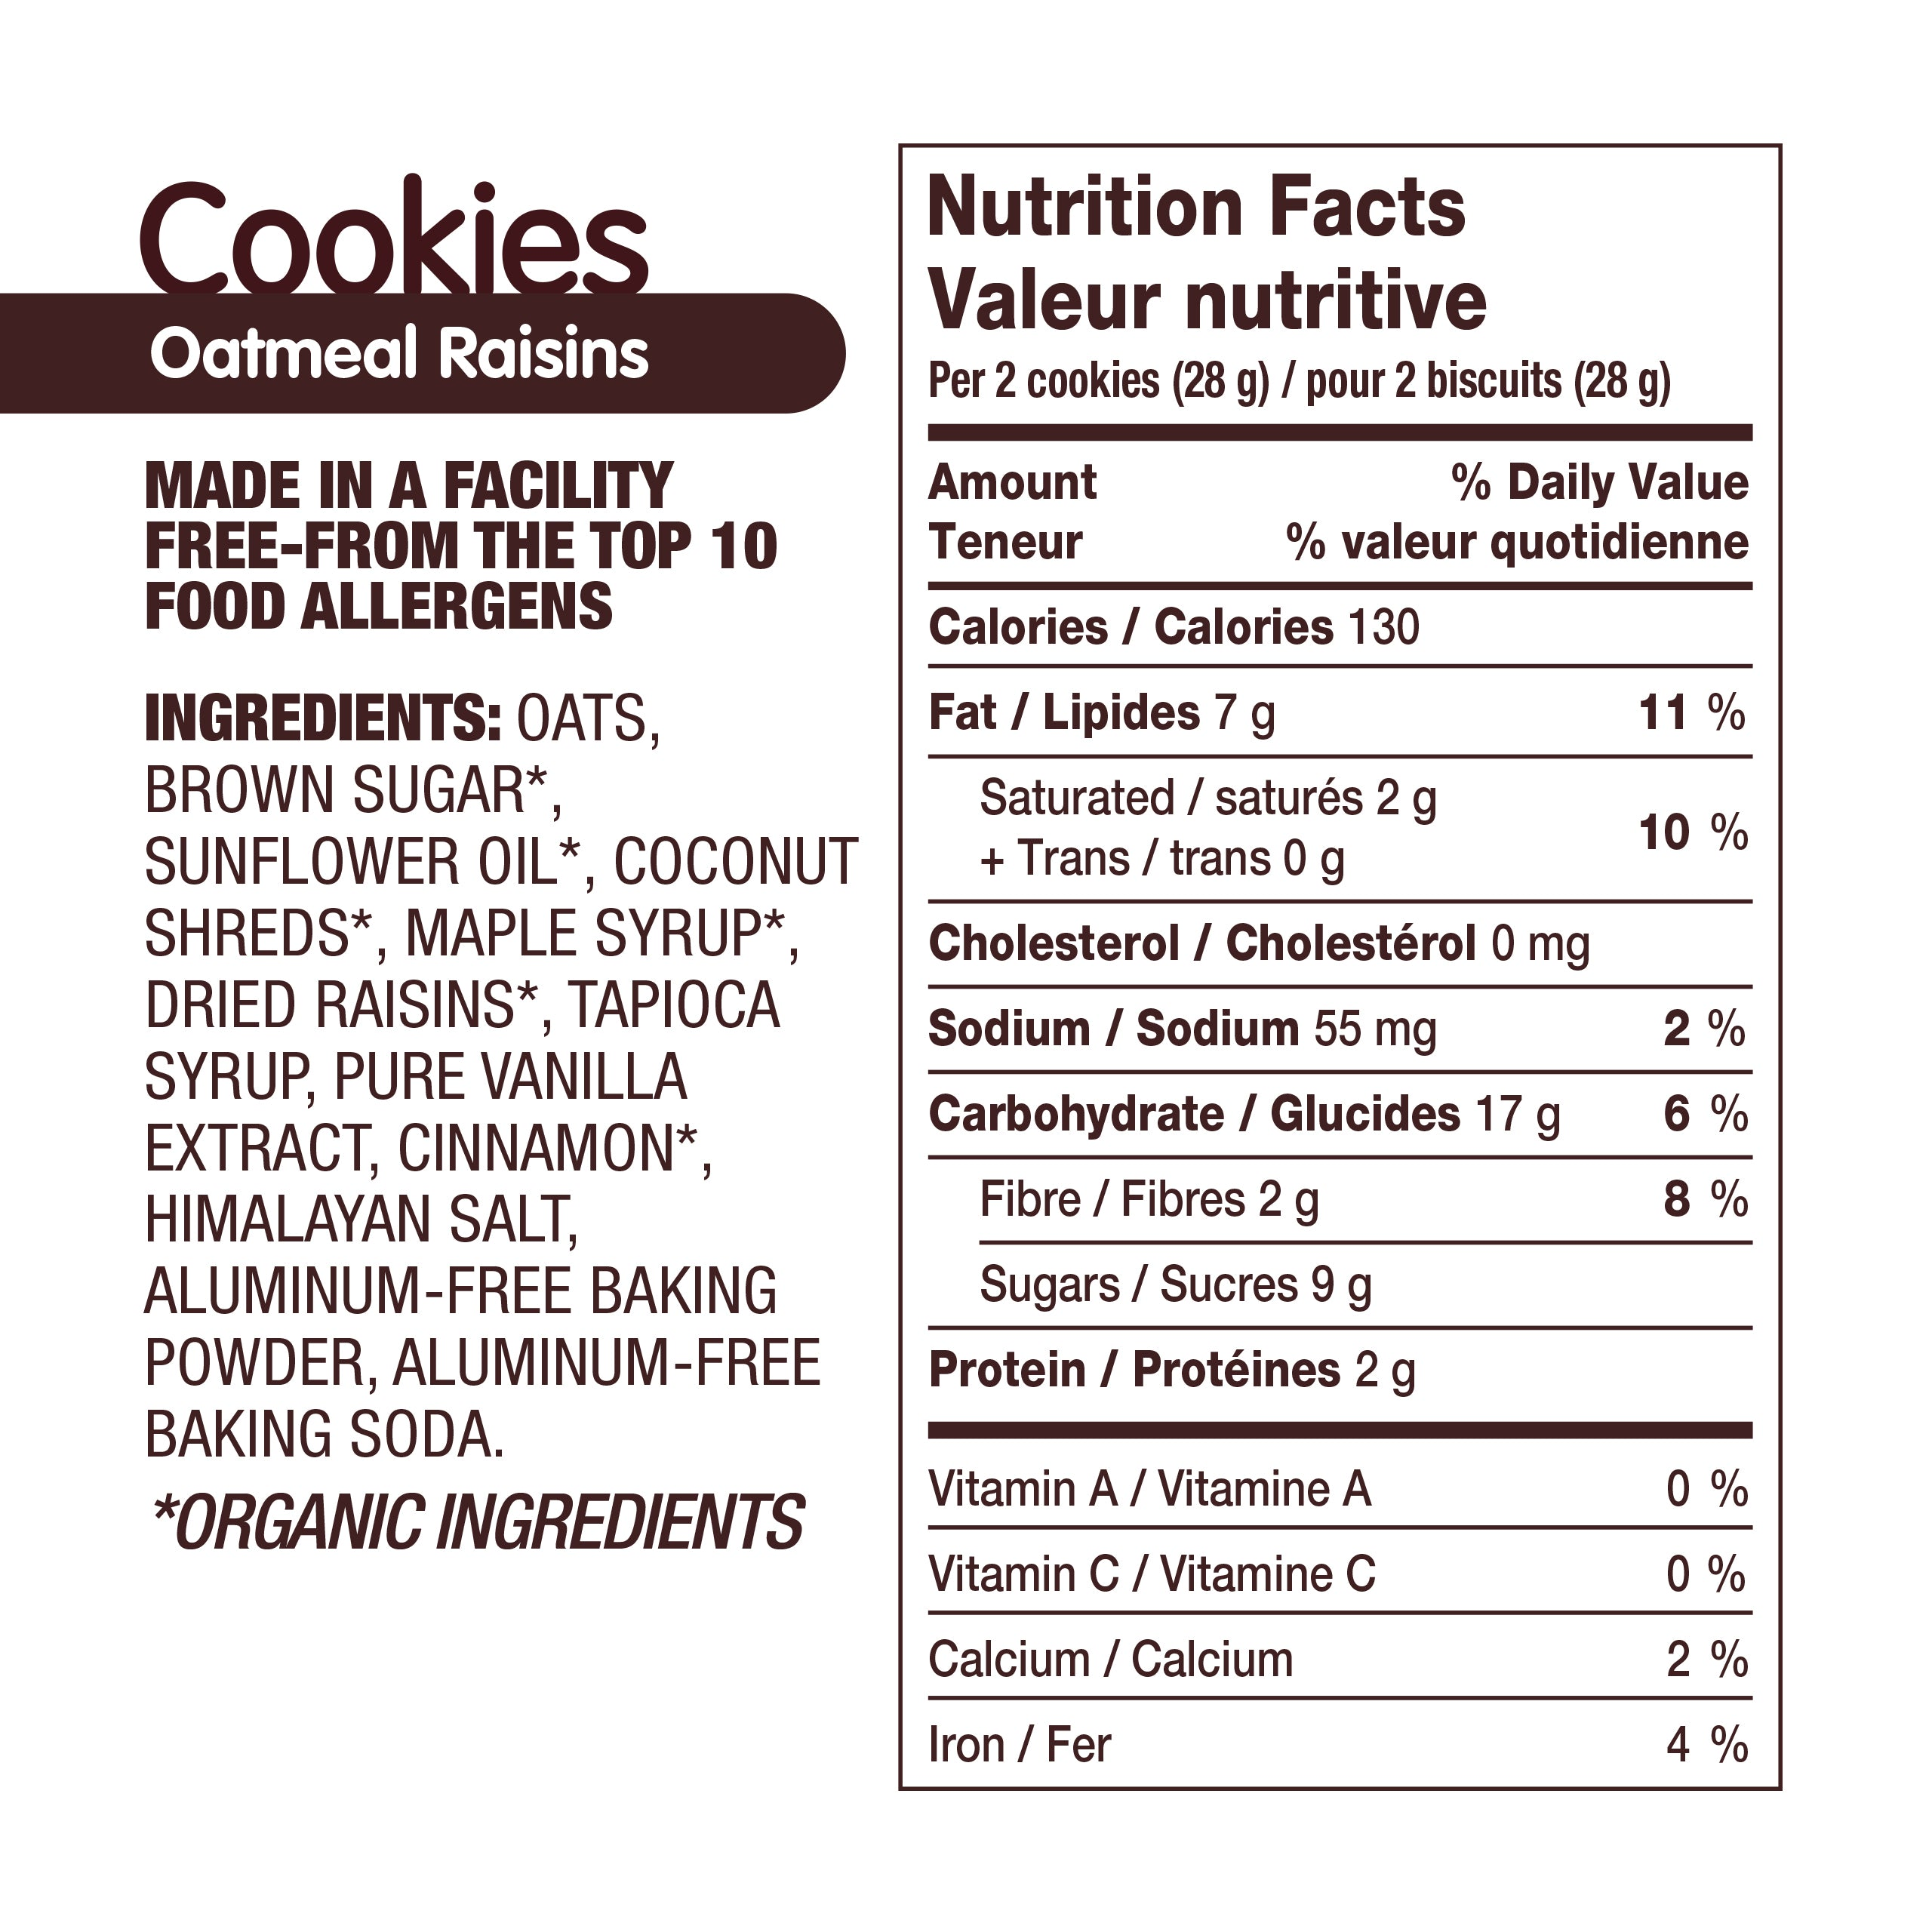 AllergySmart Oatmeal Raisin Cookie - 1 Tray of 12 x 2 pk (28g), 336g